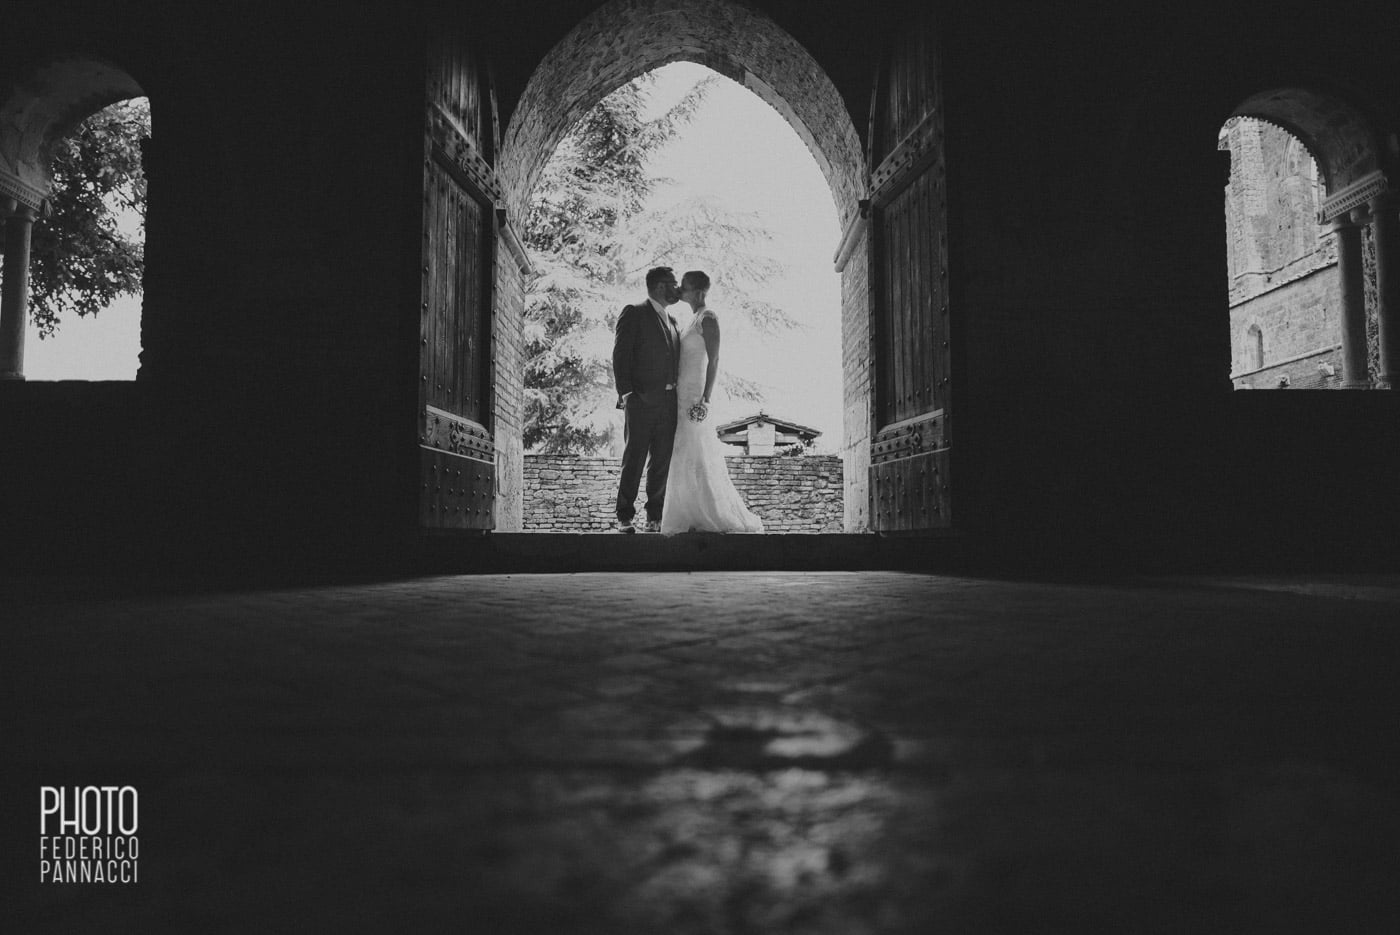 040-DestinationWedding-Sangalgano